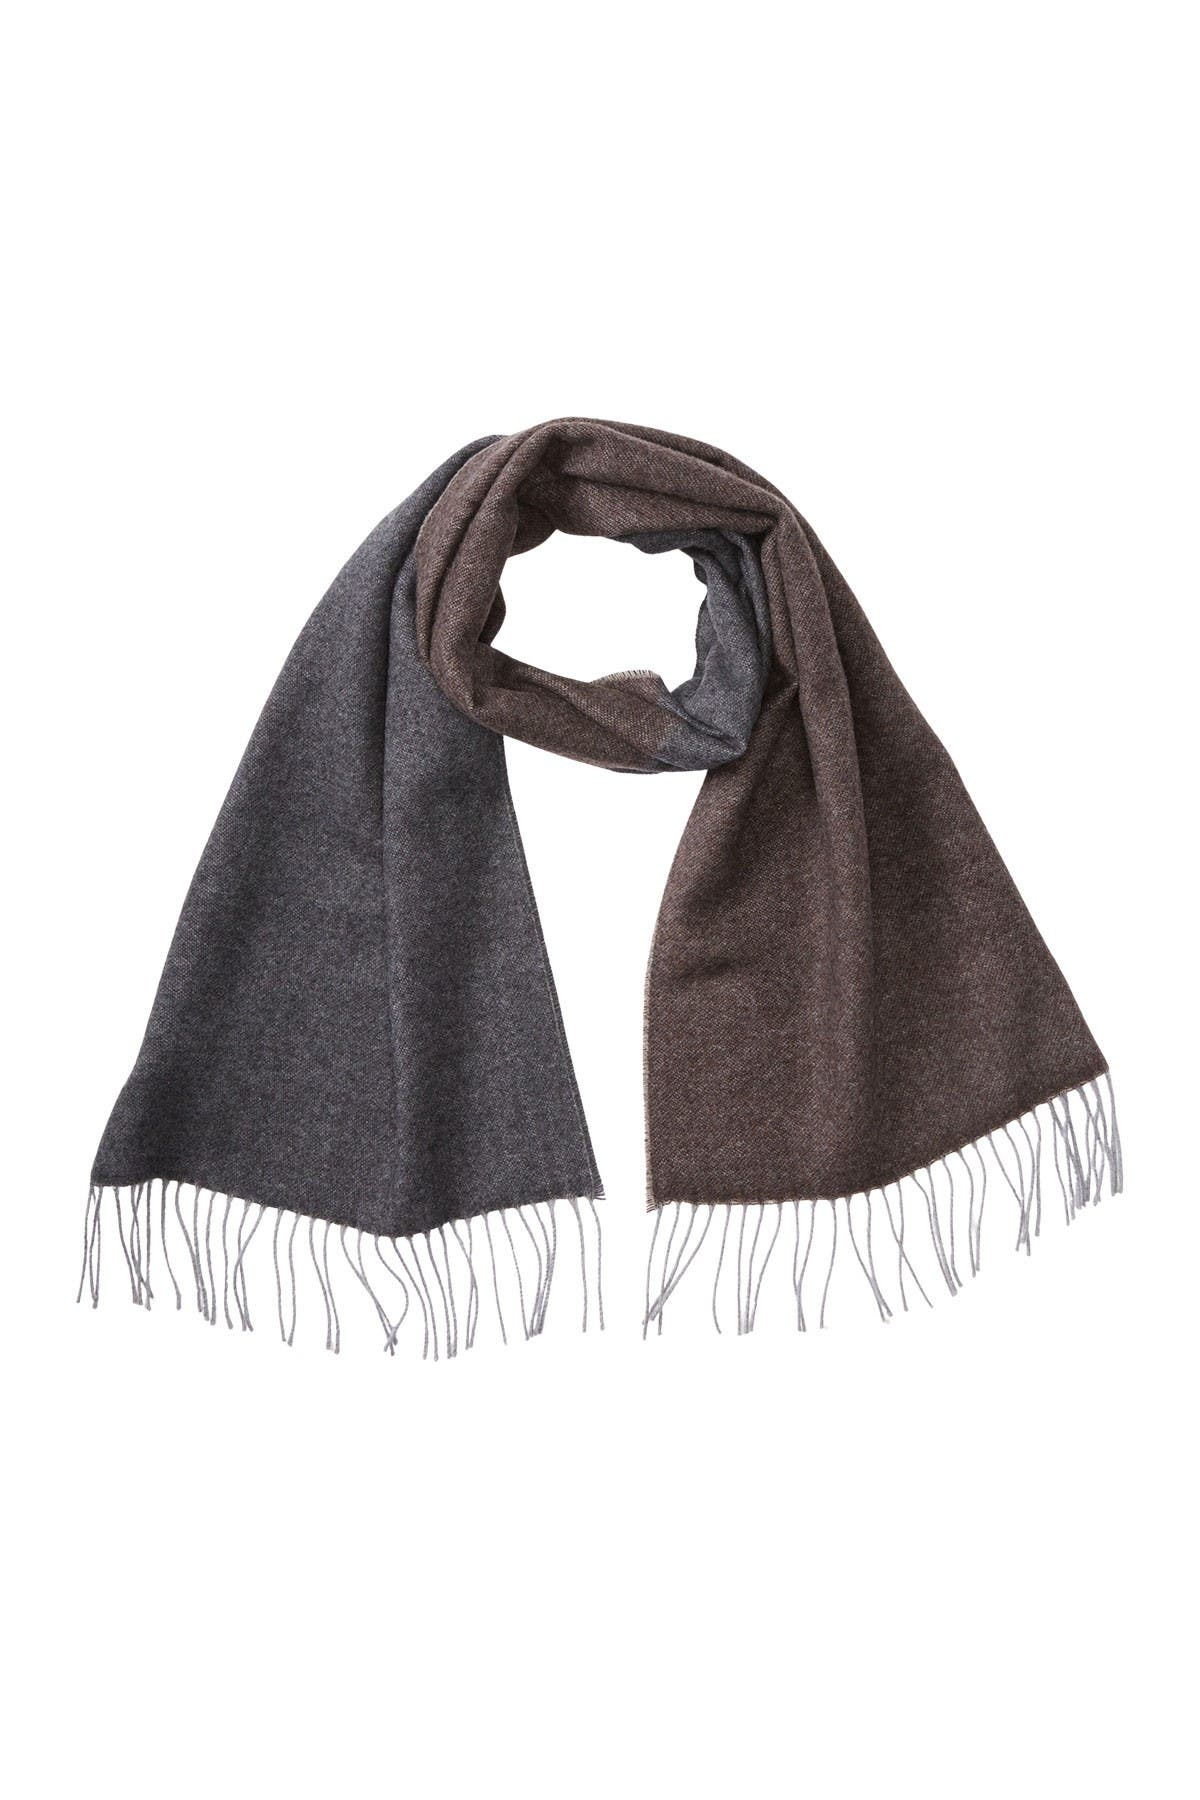 Image of Chelsey Imports Heather Striped Cashmere Scarf